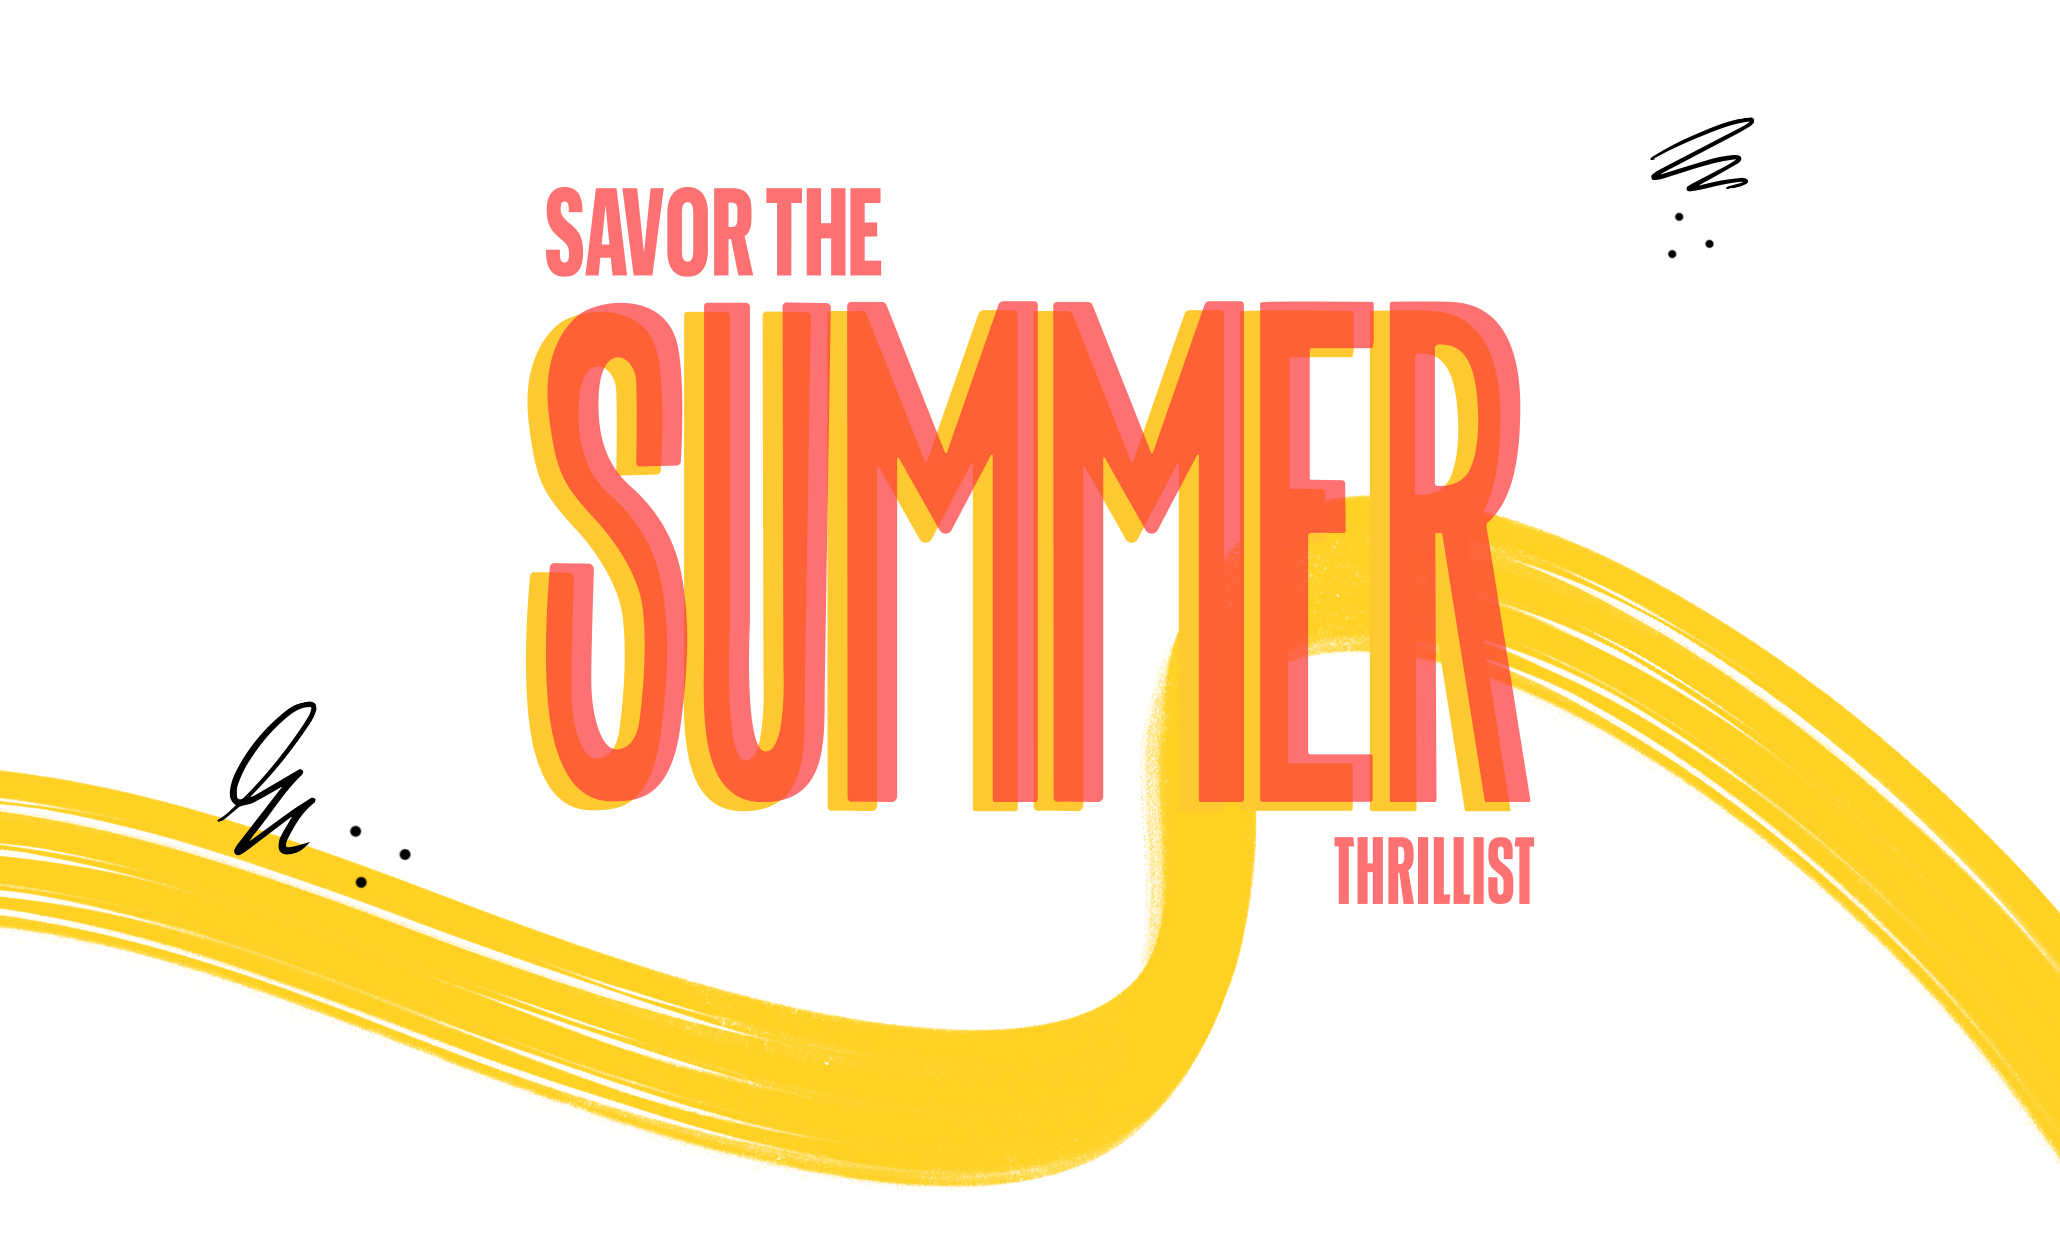 THRILLIST PRESENTS: SAVOR THE SUMMER -